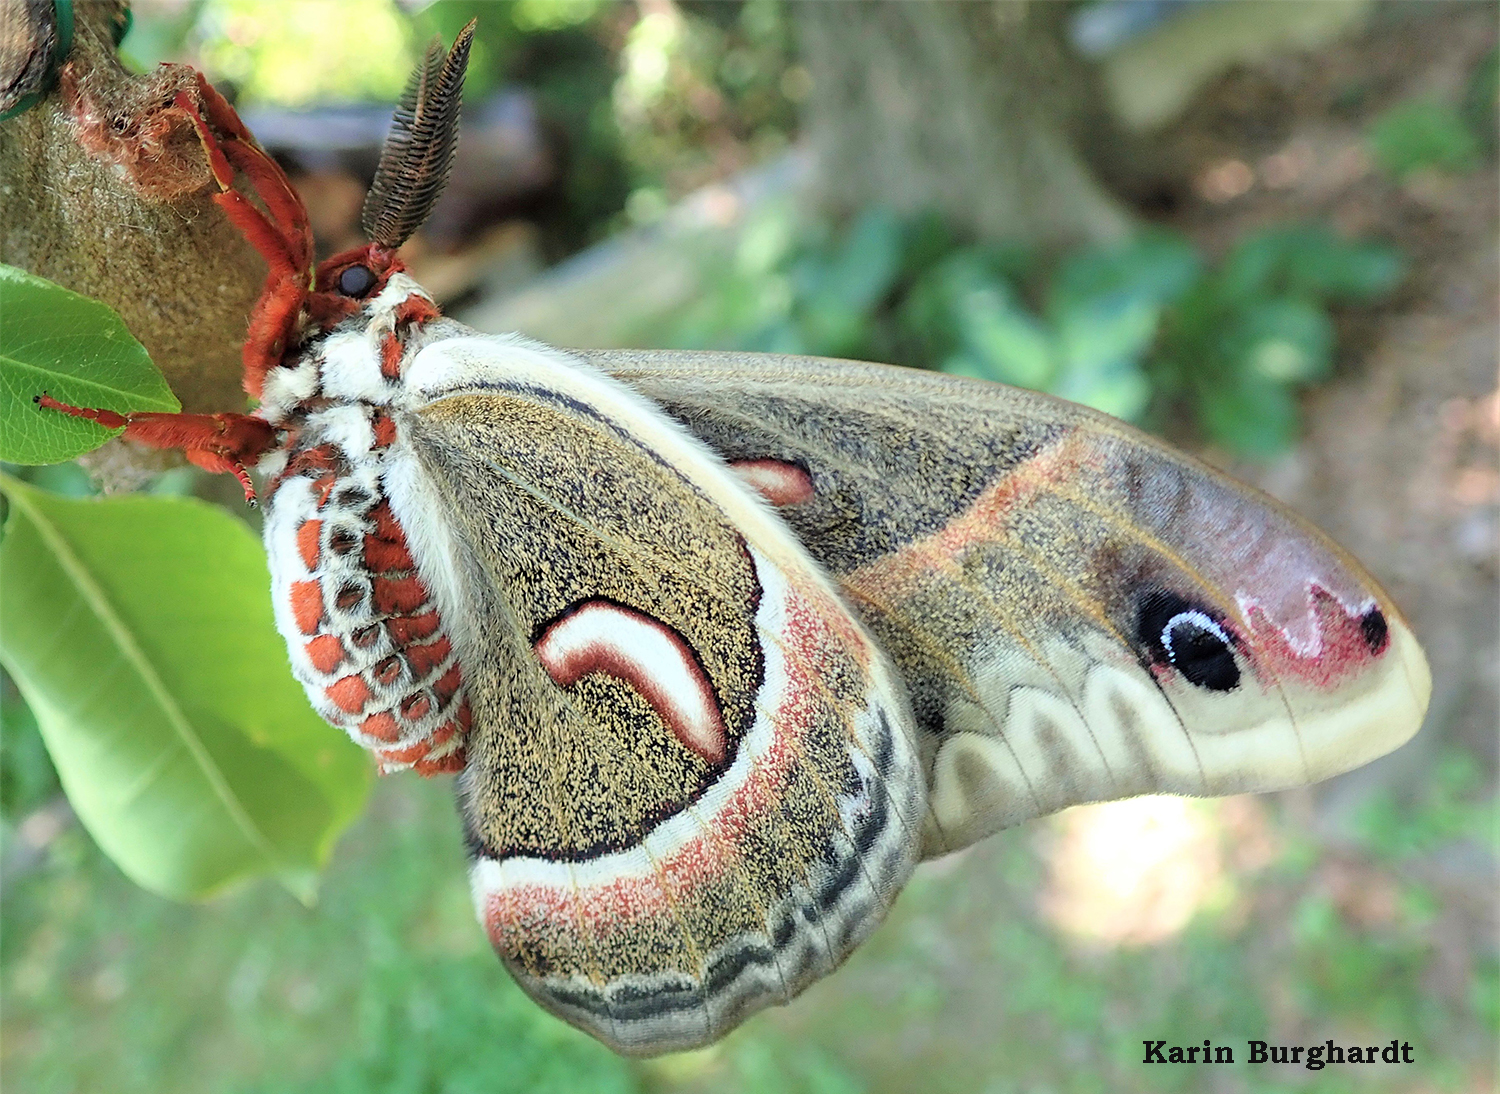 Some say Cecropia is the most beautiful of all silk moths. Hard to argue with that. Photo credit: Karin Burghardt